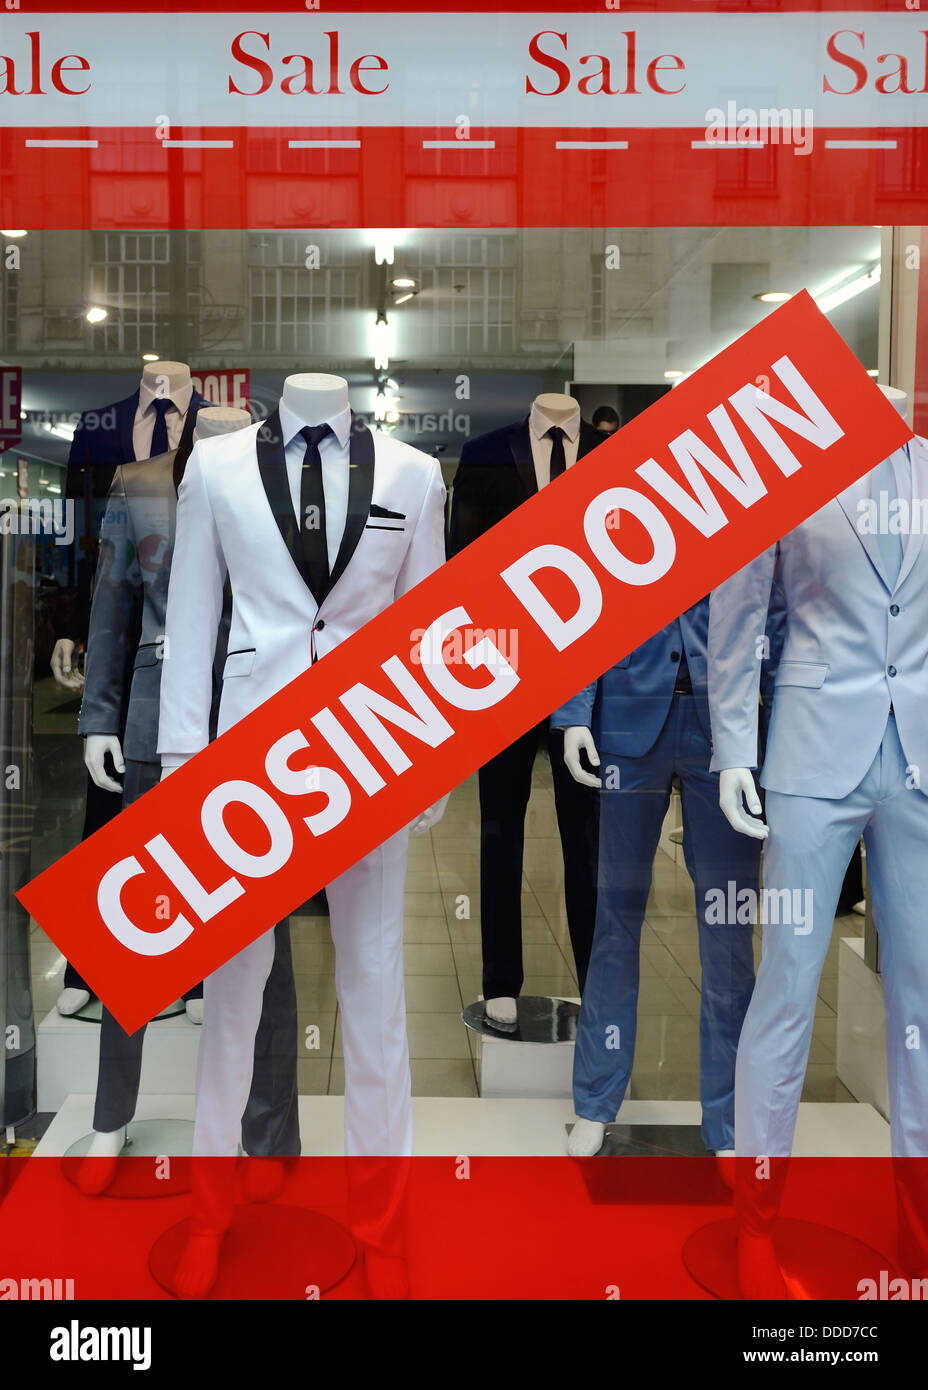 Closing Down Sign in a Shop Window, Oxford Street, London, UK. - Stock Image